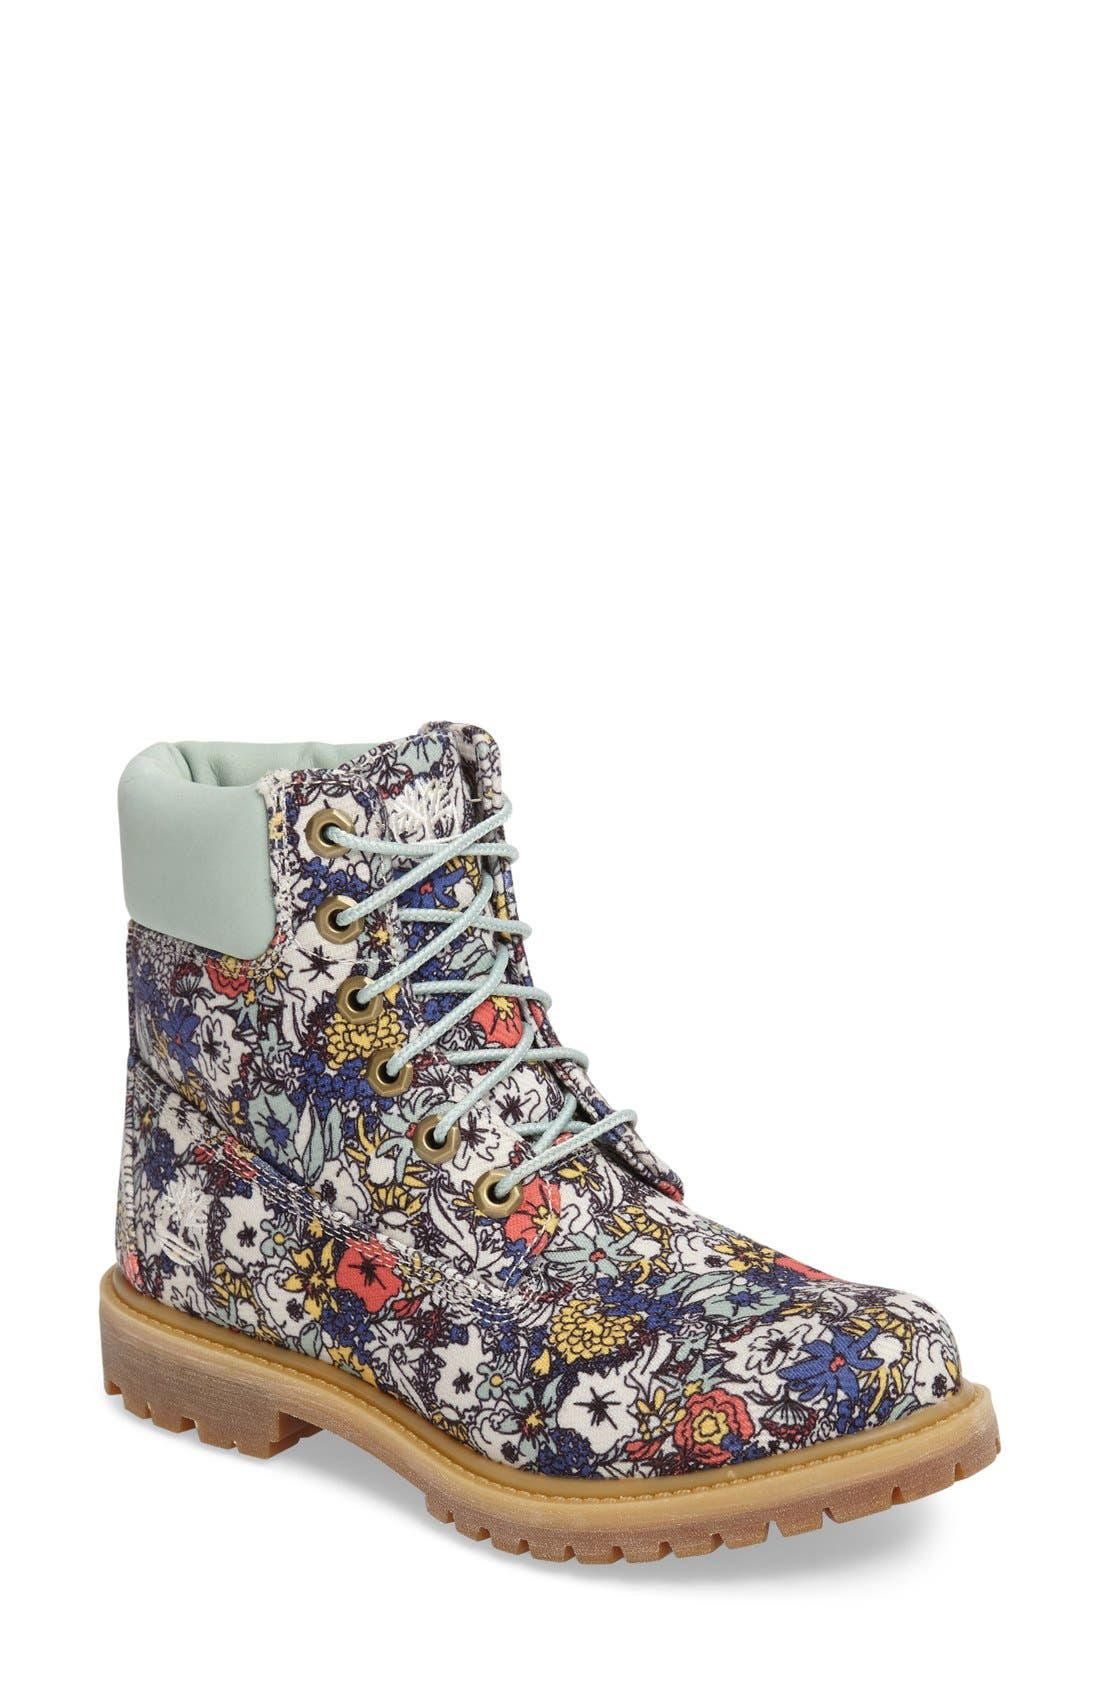 Timberland 6 Inch Premium Floral Print Boot (Women)